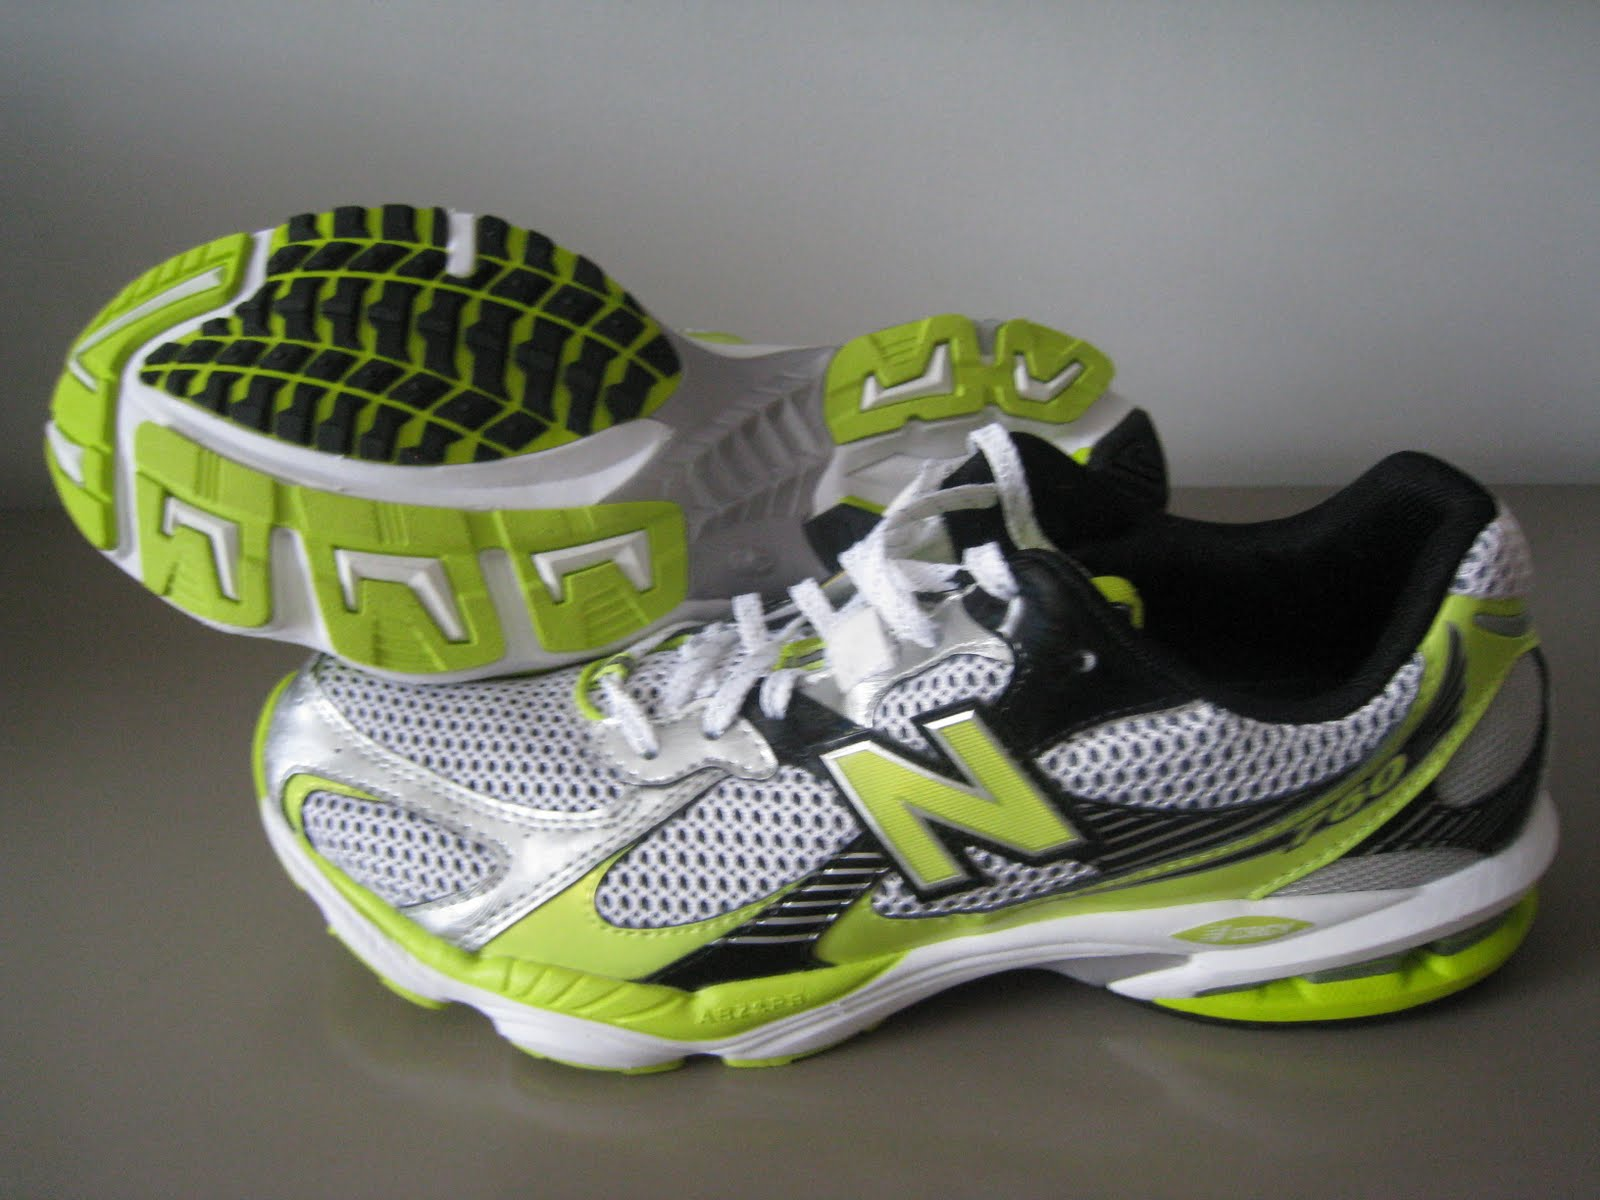 c05ac312a6bf Last weekend, however, I finally gave in and got my first pair of NBs - the New  Balance 760.